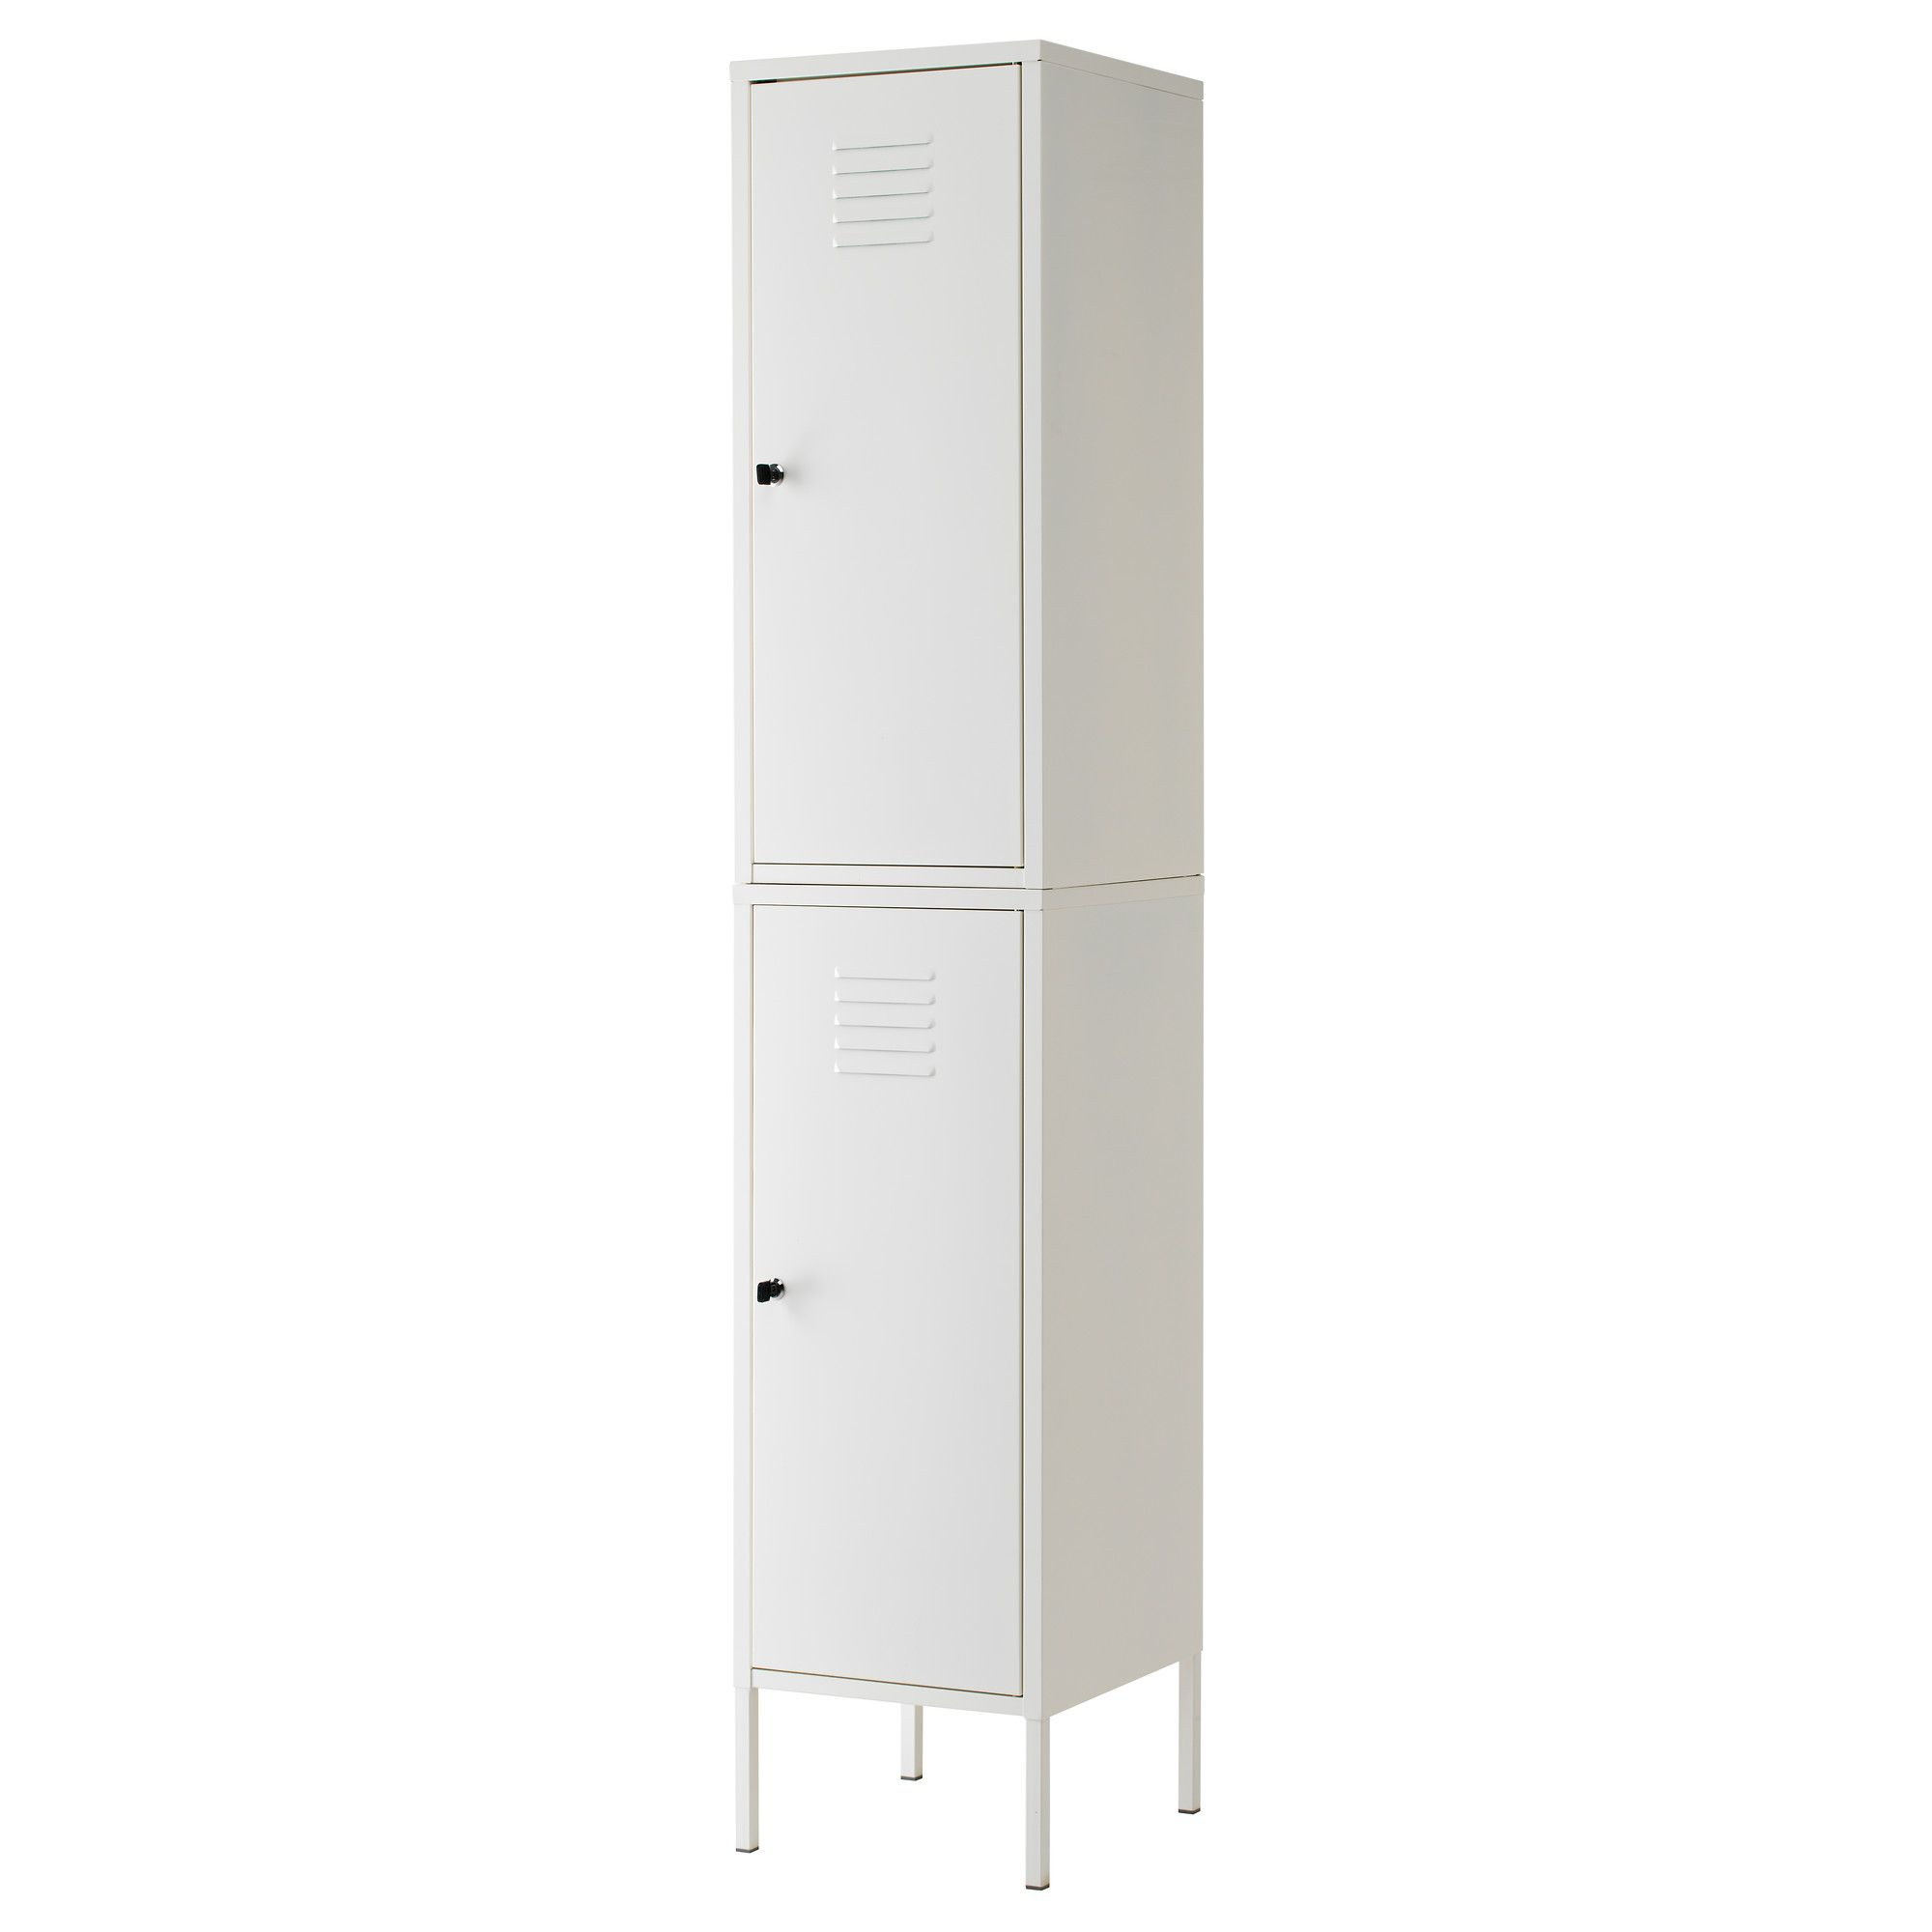 Bathroom Storage Ikea Ps Upright Cabinet Loft Design Pinterest Ikea Ps Ikea Ps Cabinet